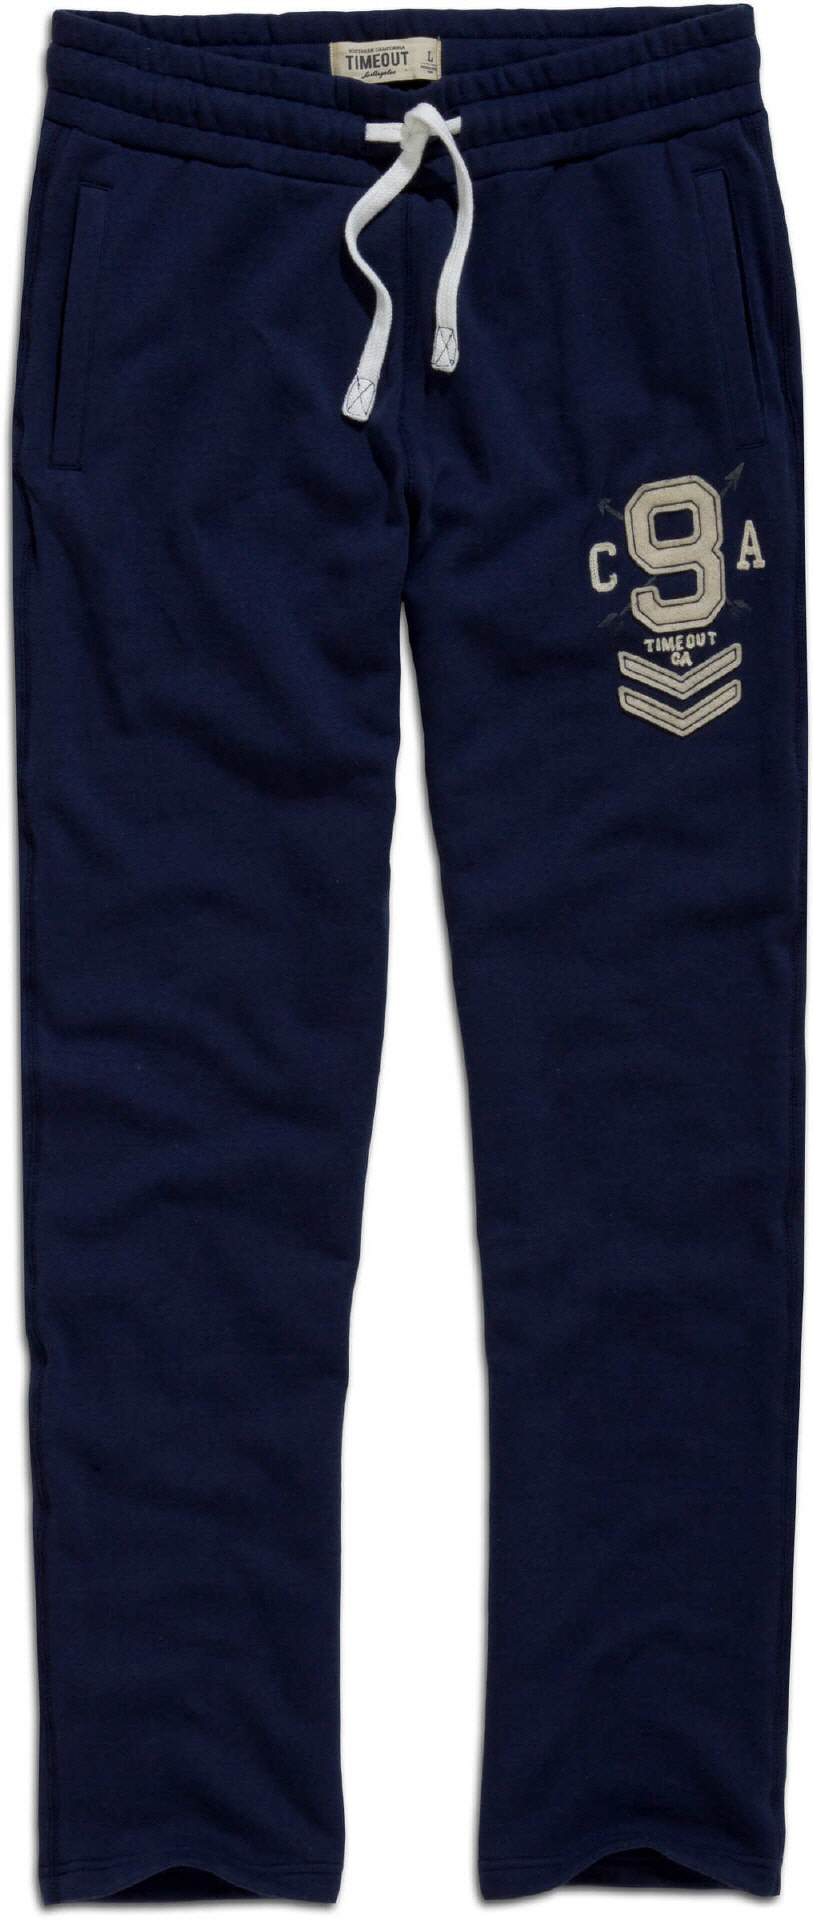 Trends of fashion - Mode Sport Trends Timeout Los Angeles Herren Sweatpants